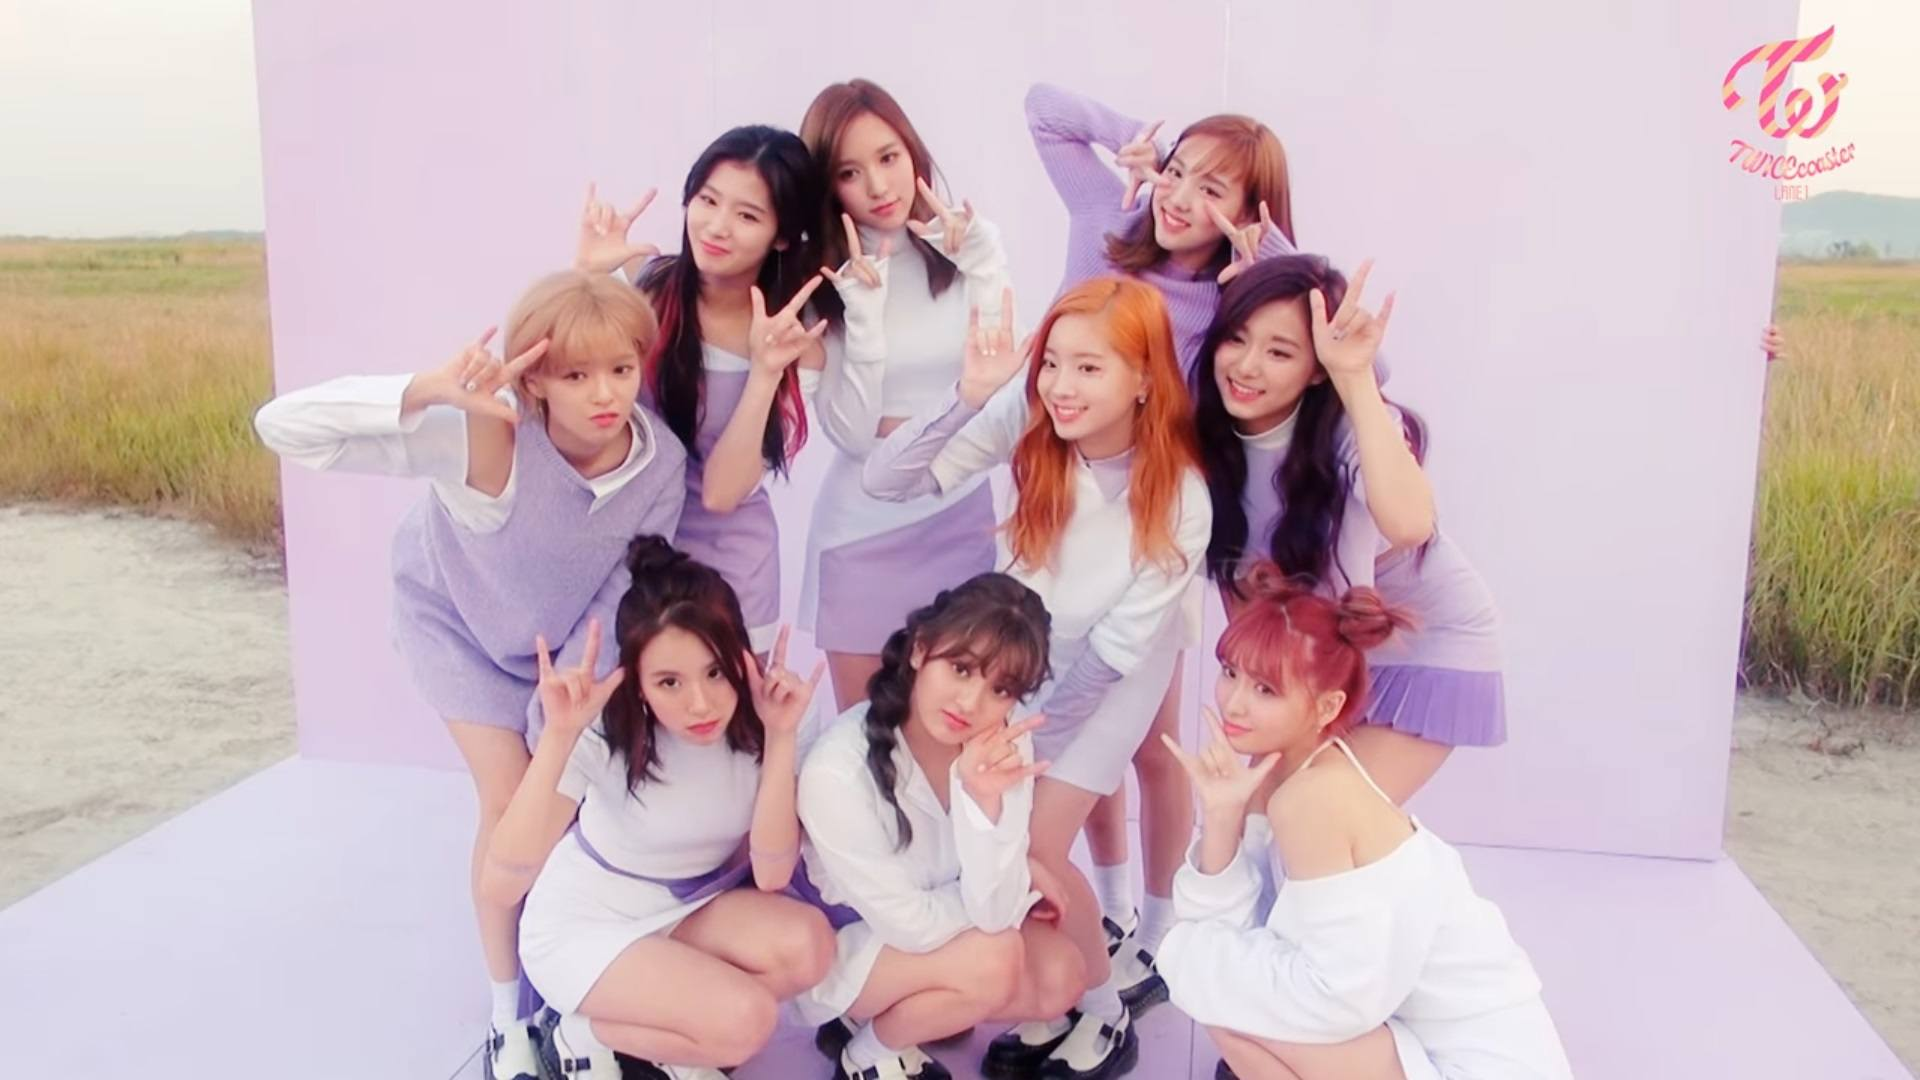 Cute Girl Name Wallpaper Koreaboo Here S What Fans Can Expect From Twice Gugudan